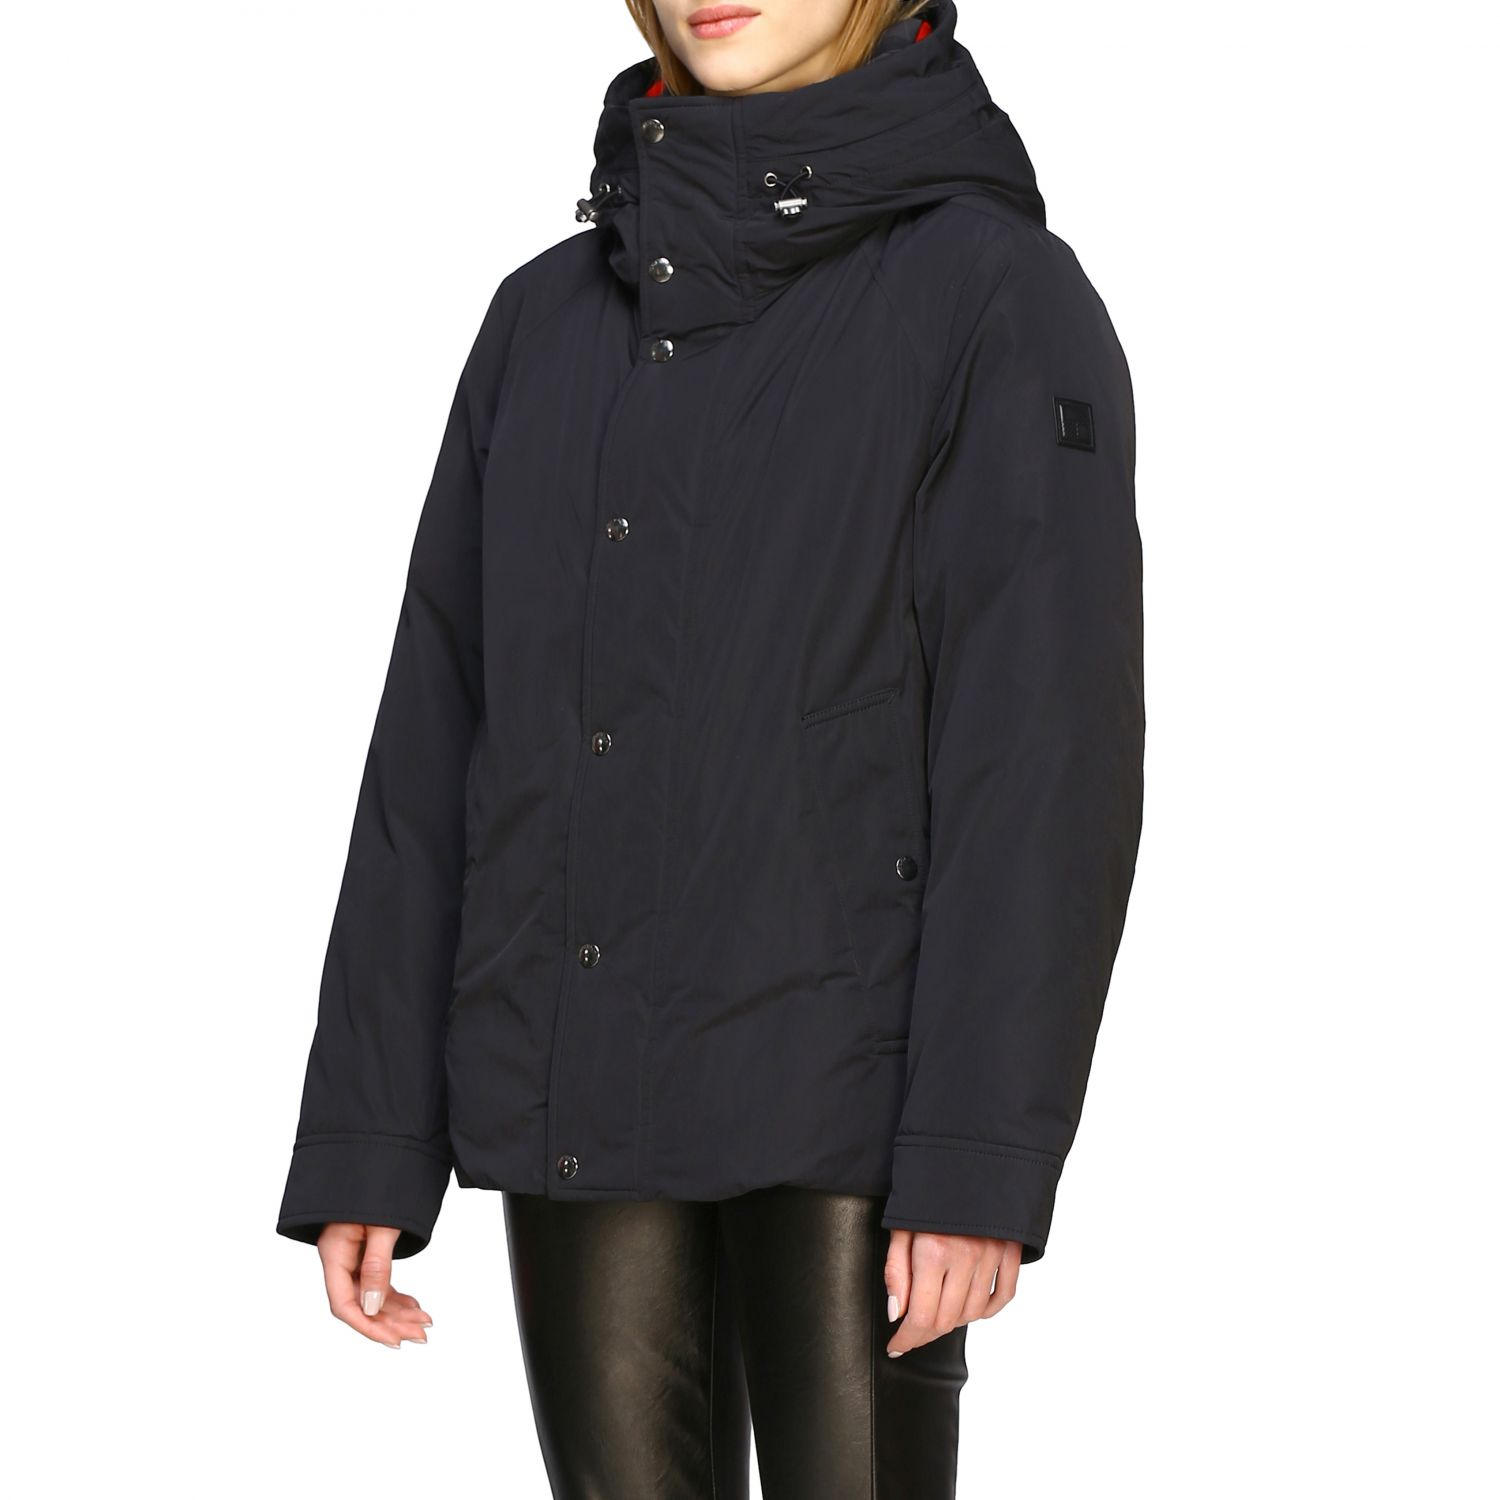 Boundry jacket nylon medio con cappuccio check nero 4